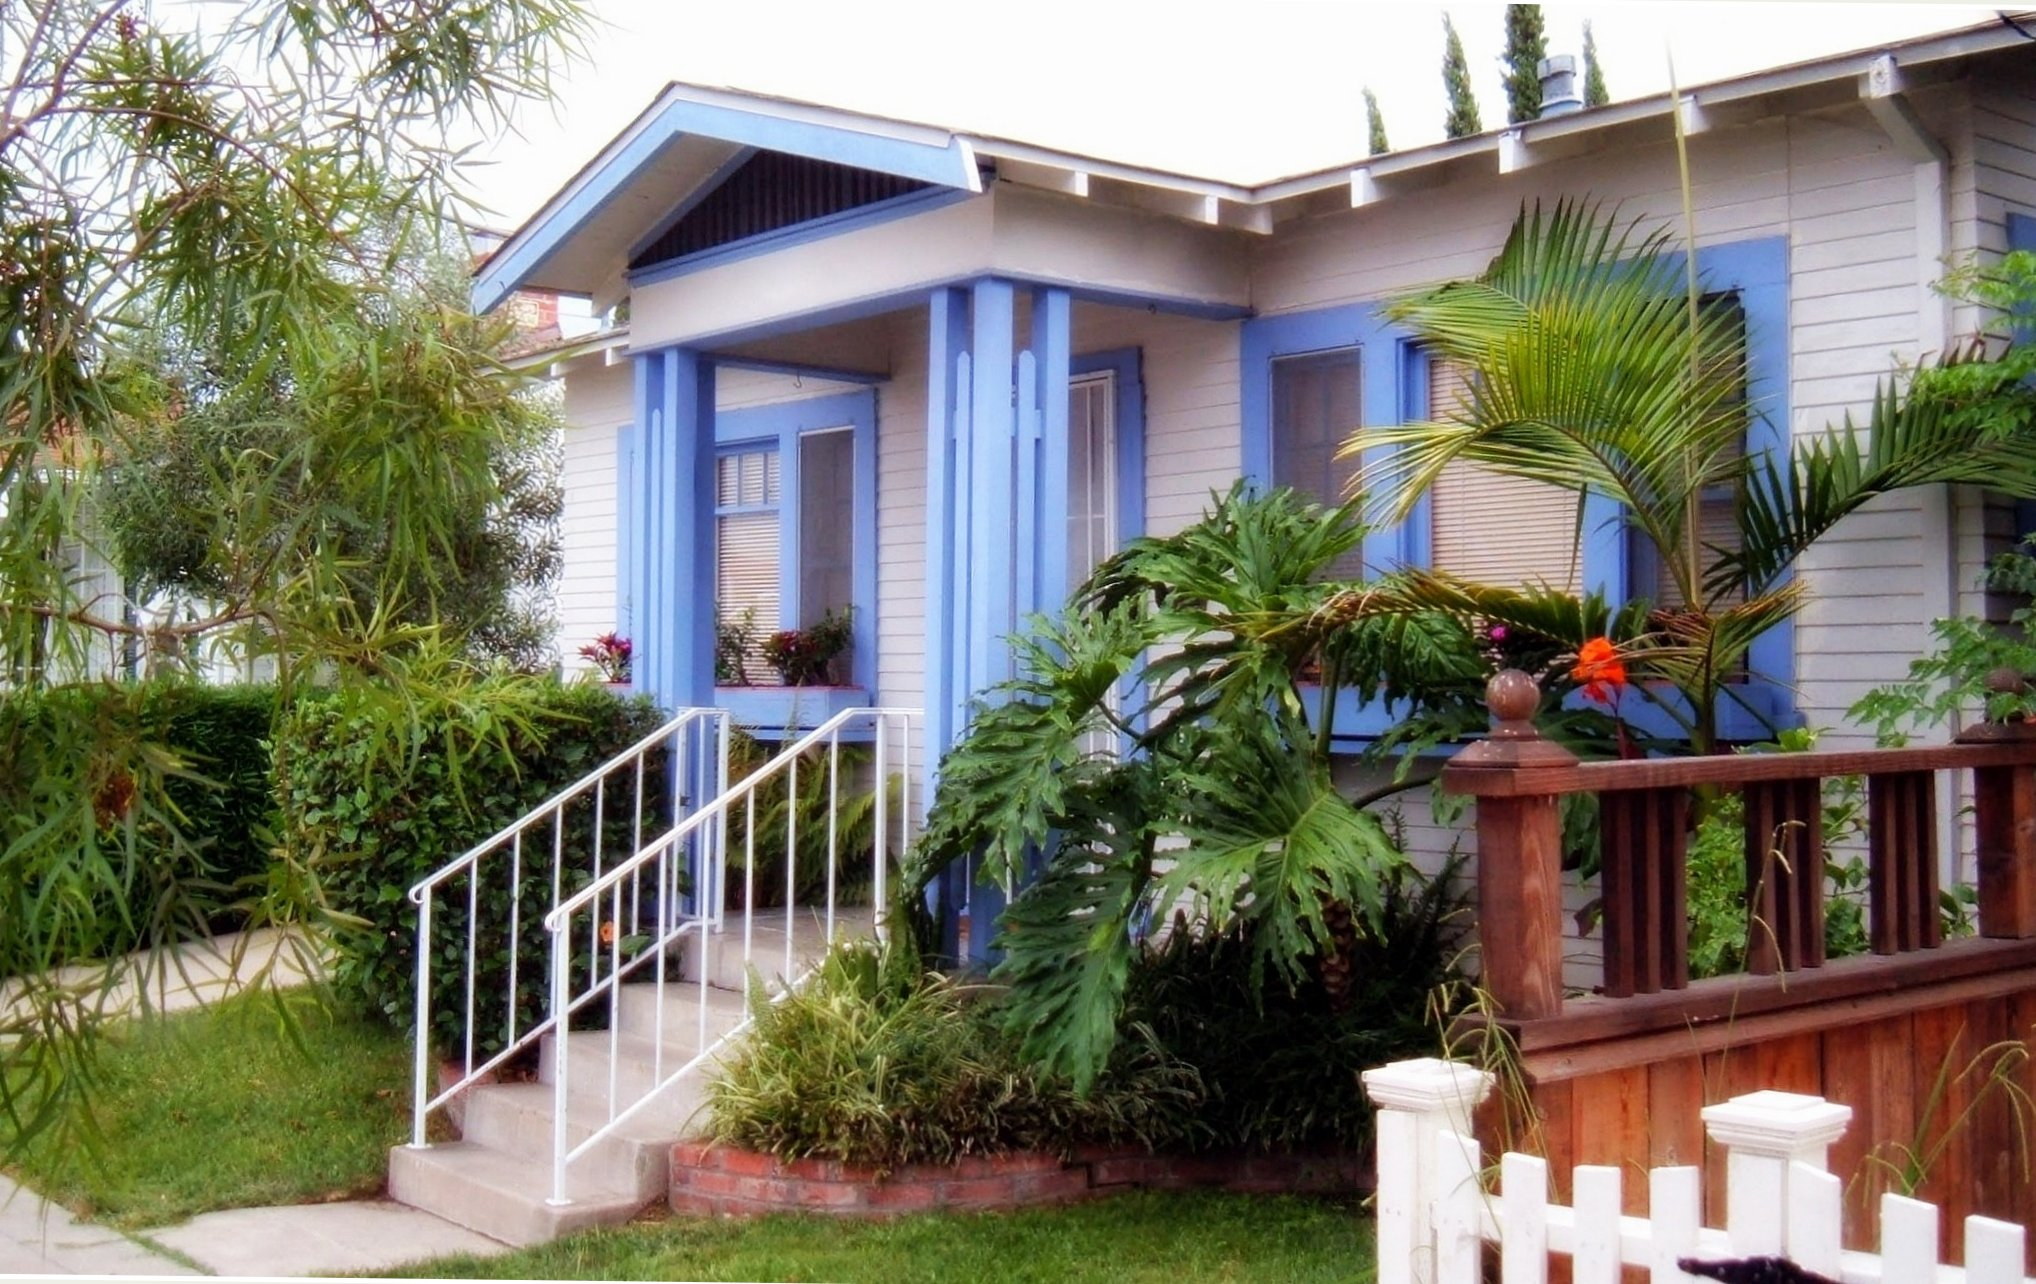 Cool For Sale -- All 2 Bedroom, 1 Bathroom Bungalows In San Diego County regarding Bungalow Homes For Sale